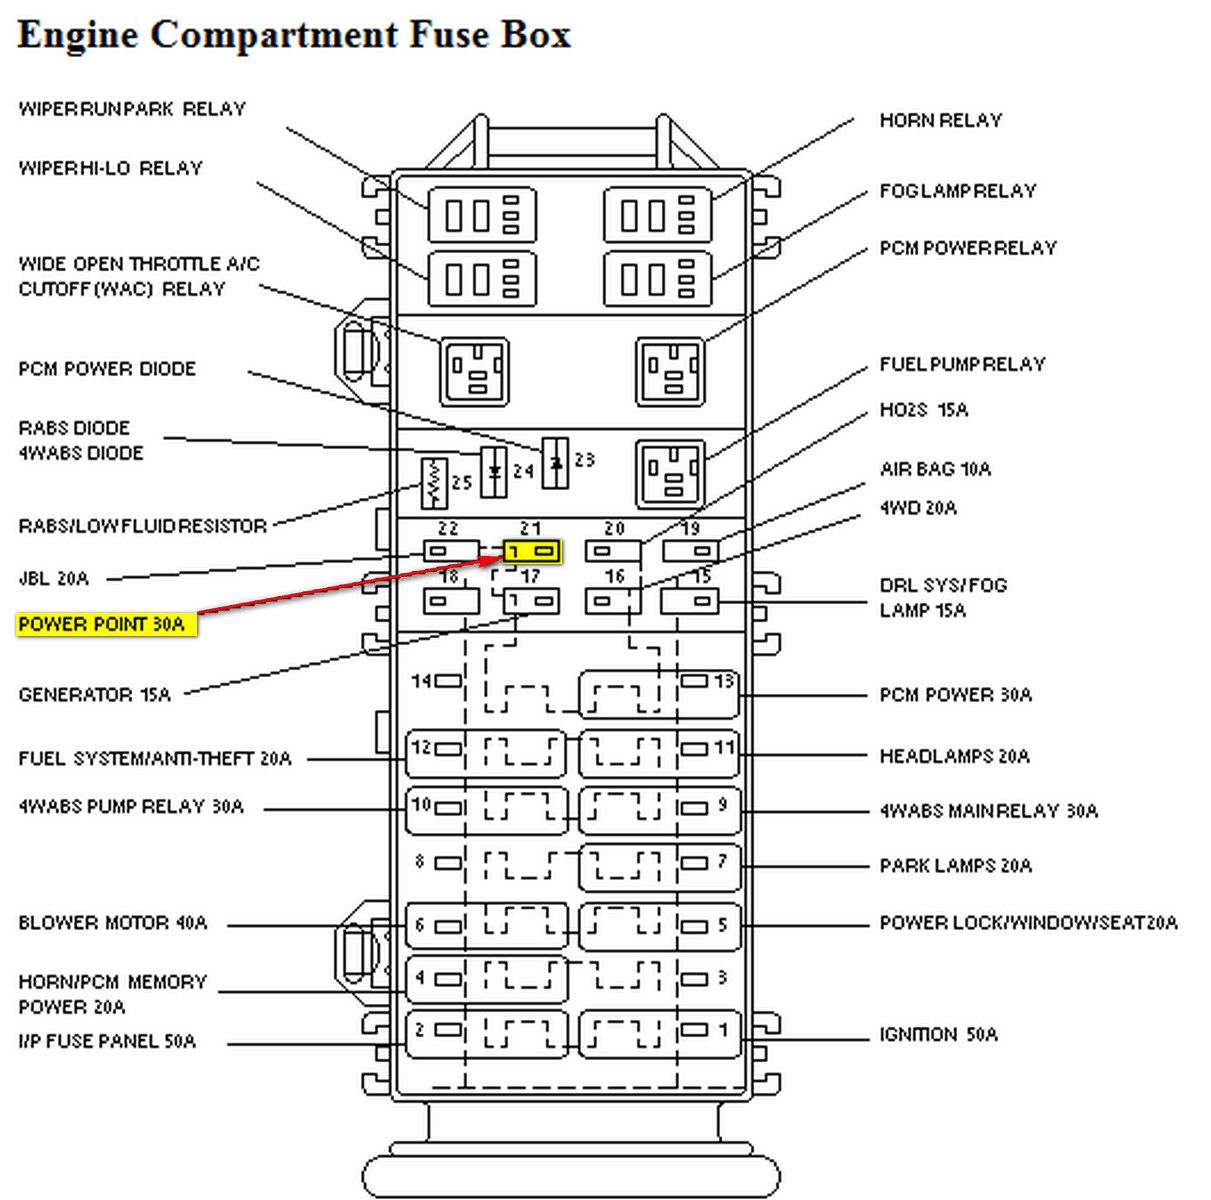 [DIAGRAM_3ER]  1997 Ford Ranger Fuse Box Diagram Truck Part Diagrams | Ford ranger, Fuse  box, Ford explorer | 2000 Ford Ranger V6 Auto Fuse Diagram |  | Pinterest